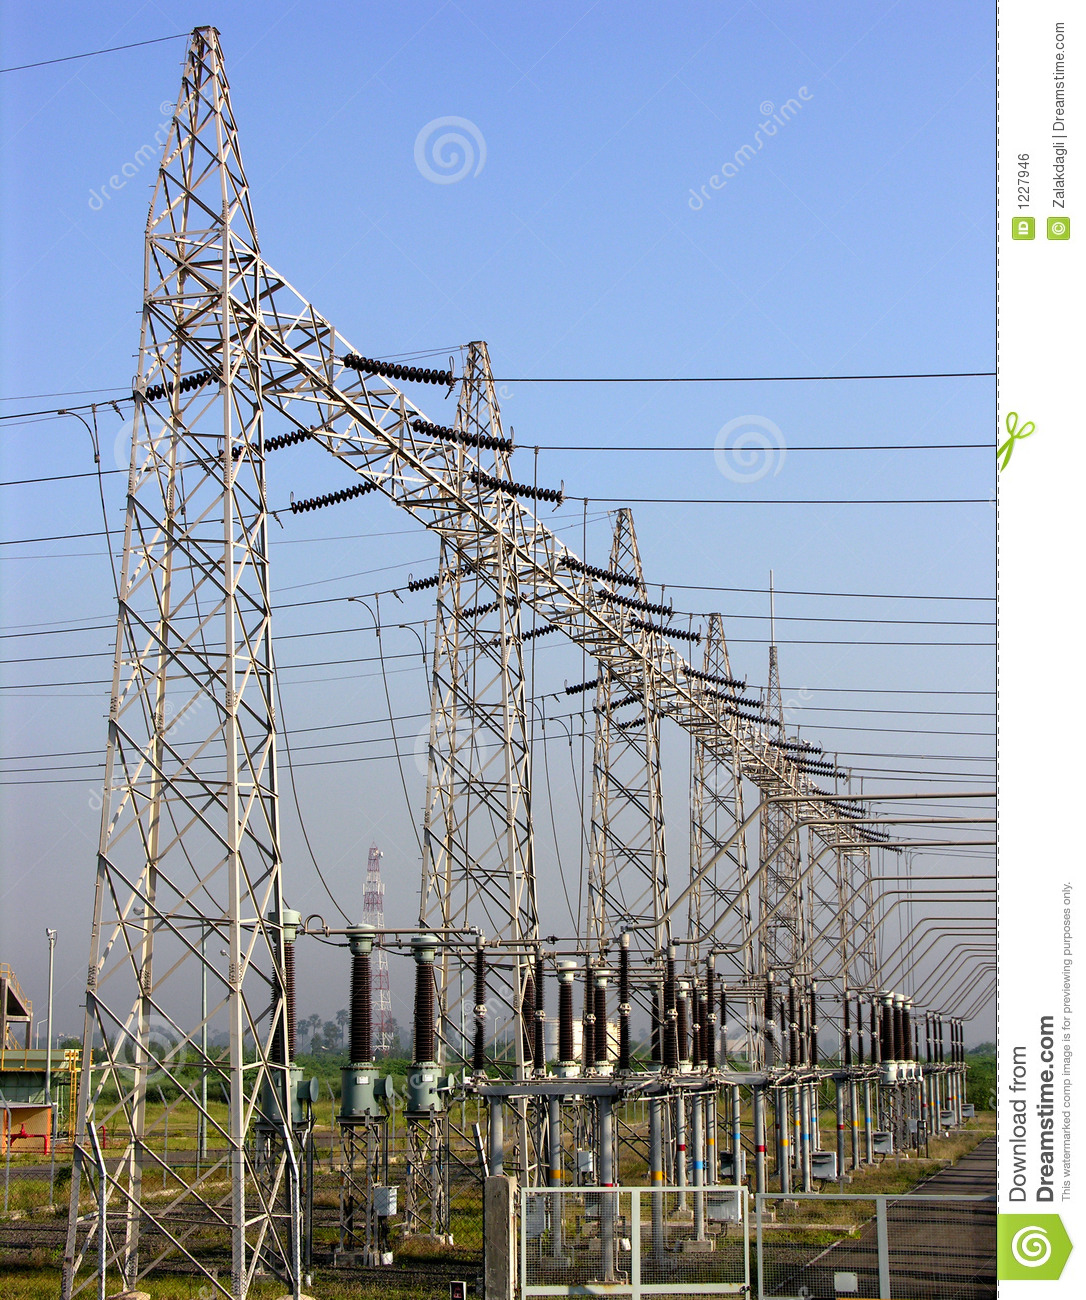 Power Pole, Power Poll, Electricity Royalty Free Stock Image - Image ...